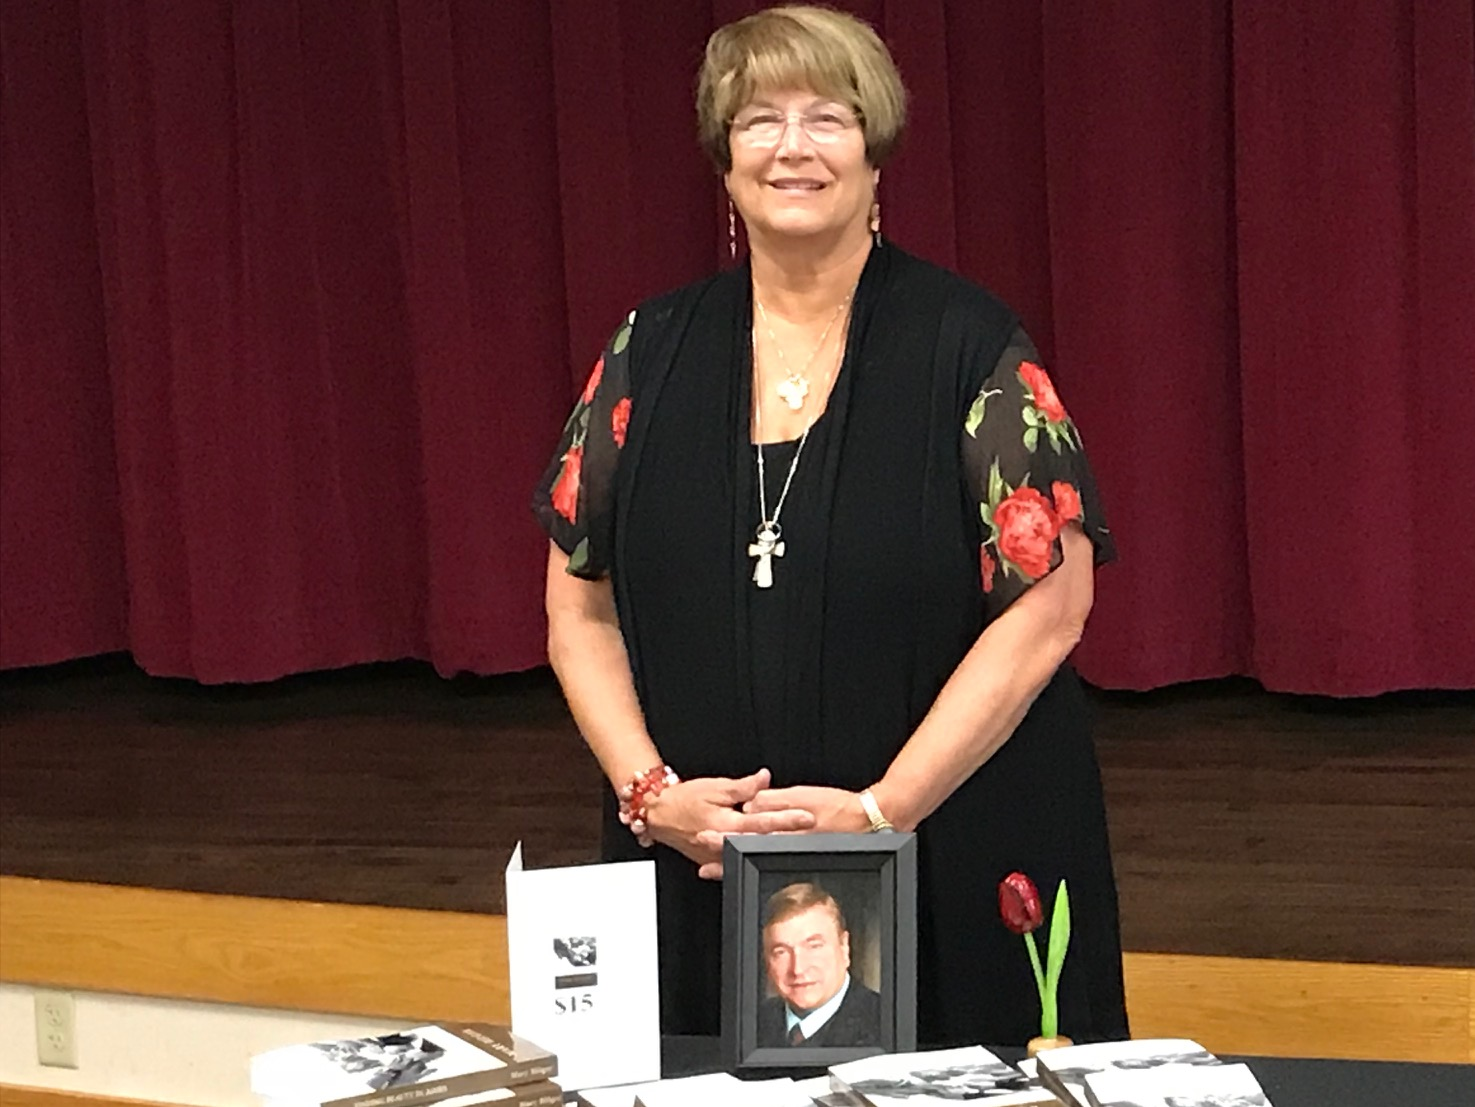 Mary Hilger at Book Signing for Finding Beauty in the Ashes